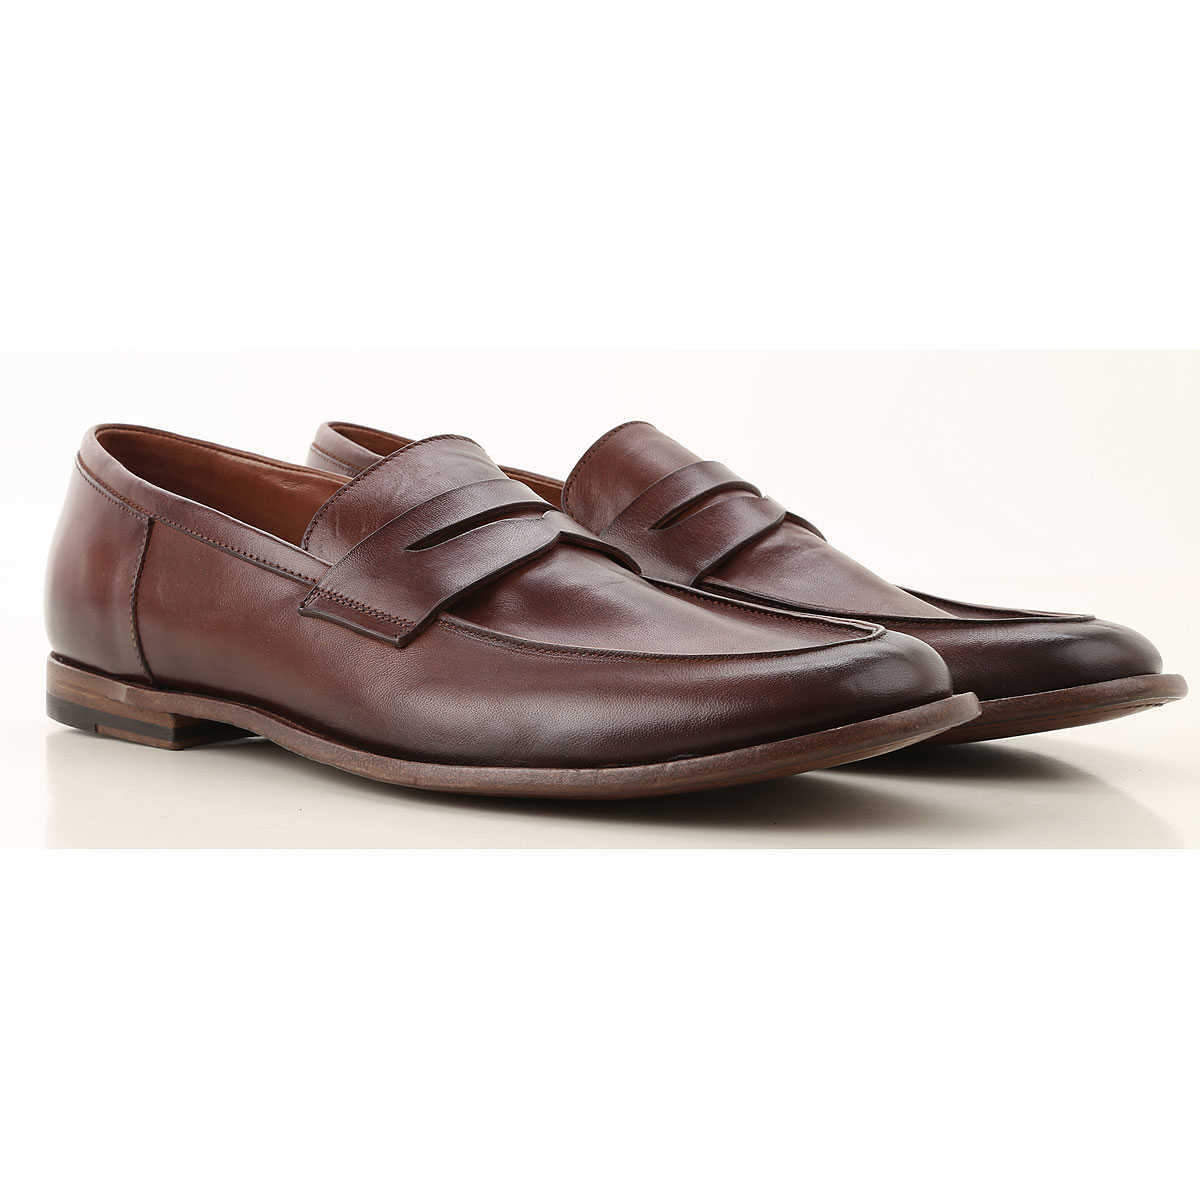 Pantanetti Loafers for Men On Sale Chocolate Brown - GOOFASH